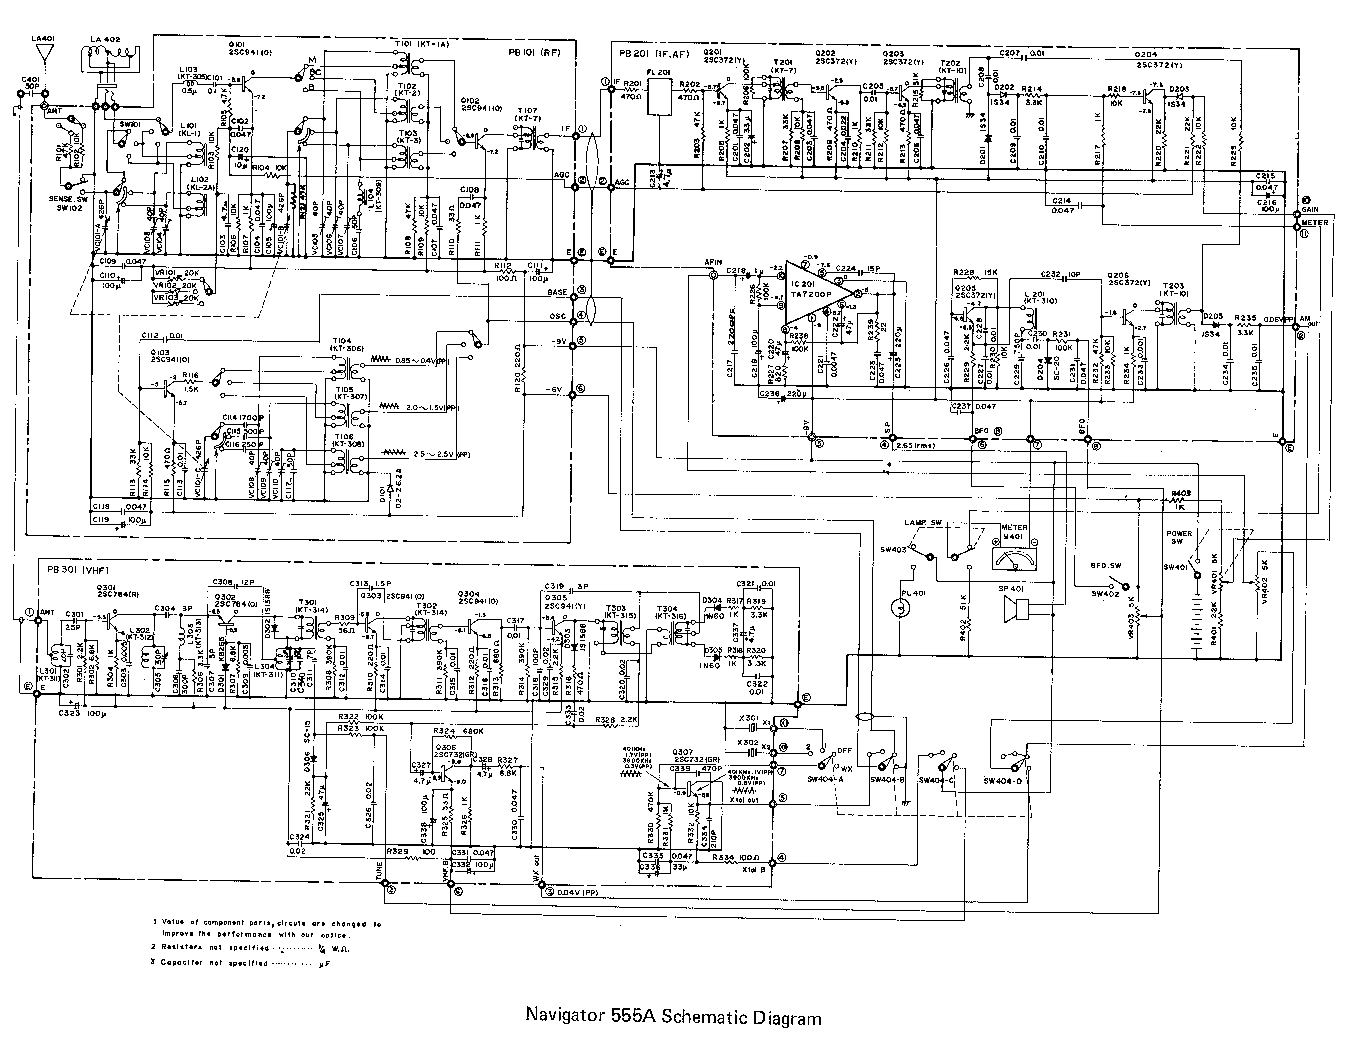 navigator 555a radio direction finder rdf circuit diagram